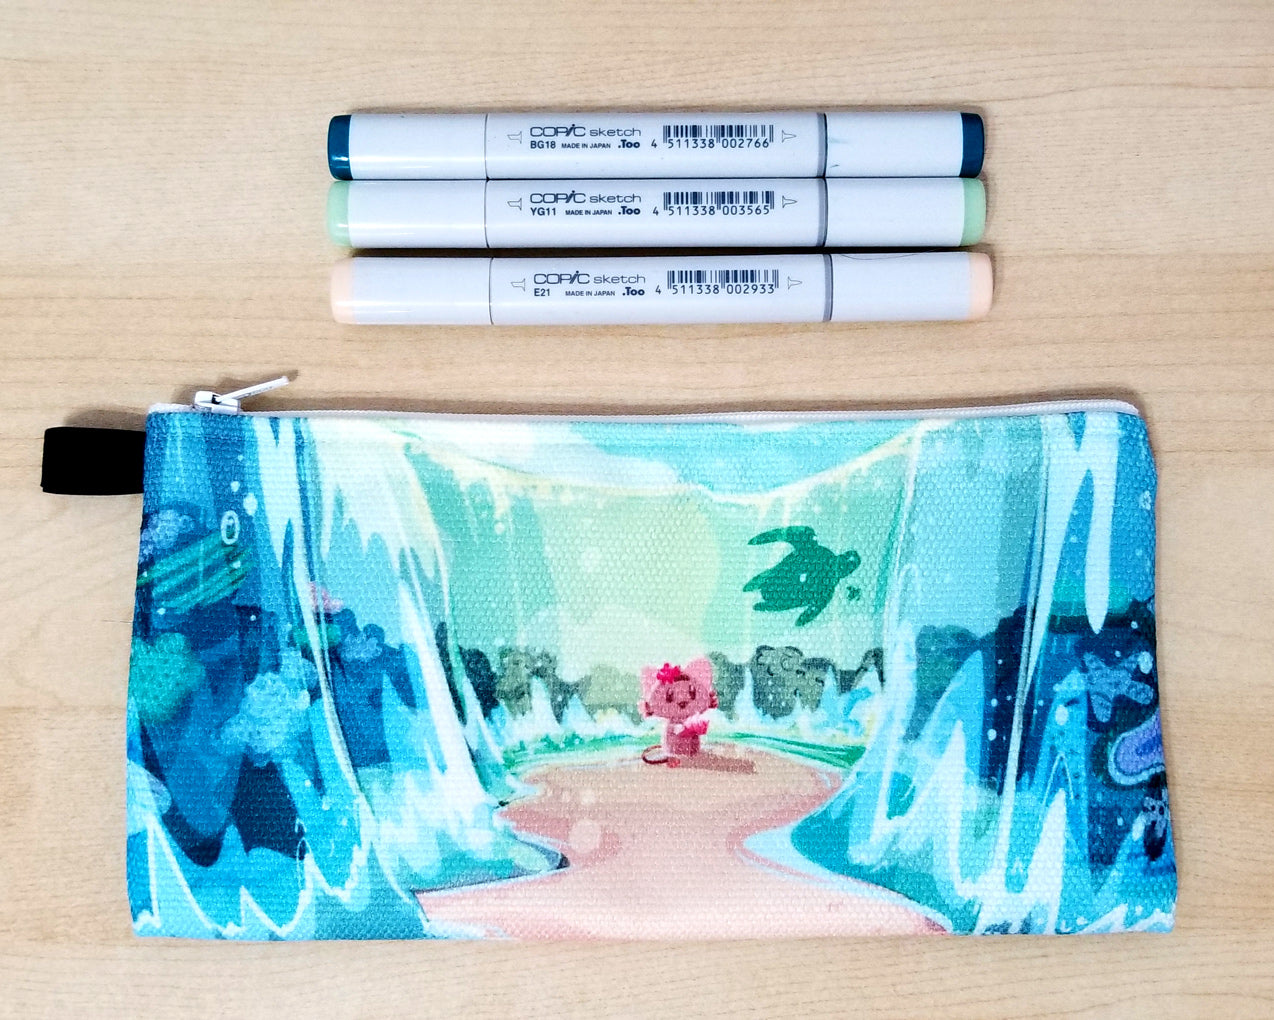 Mo-Moana Pencil Case